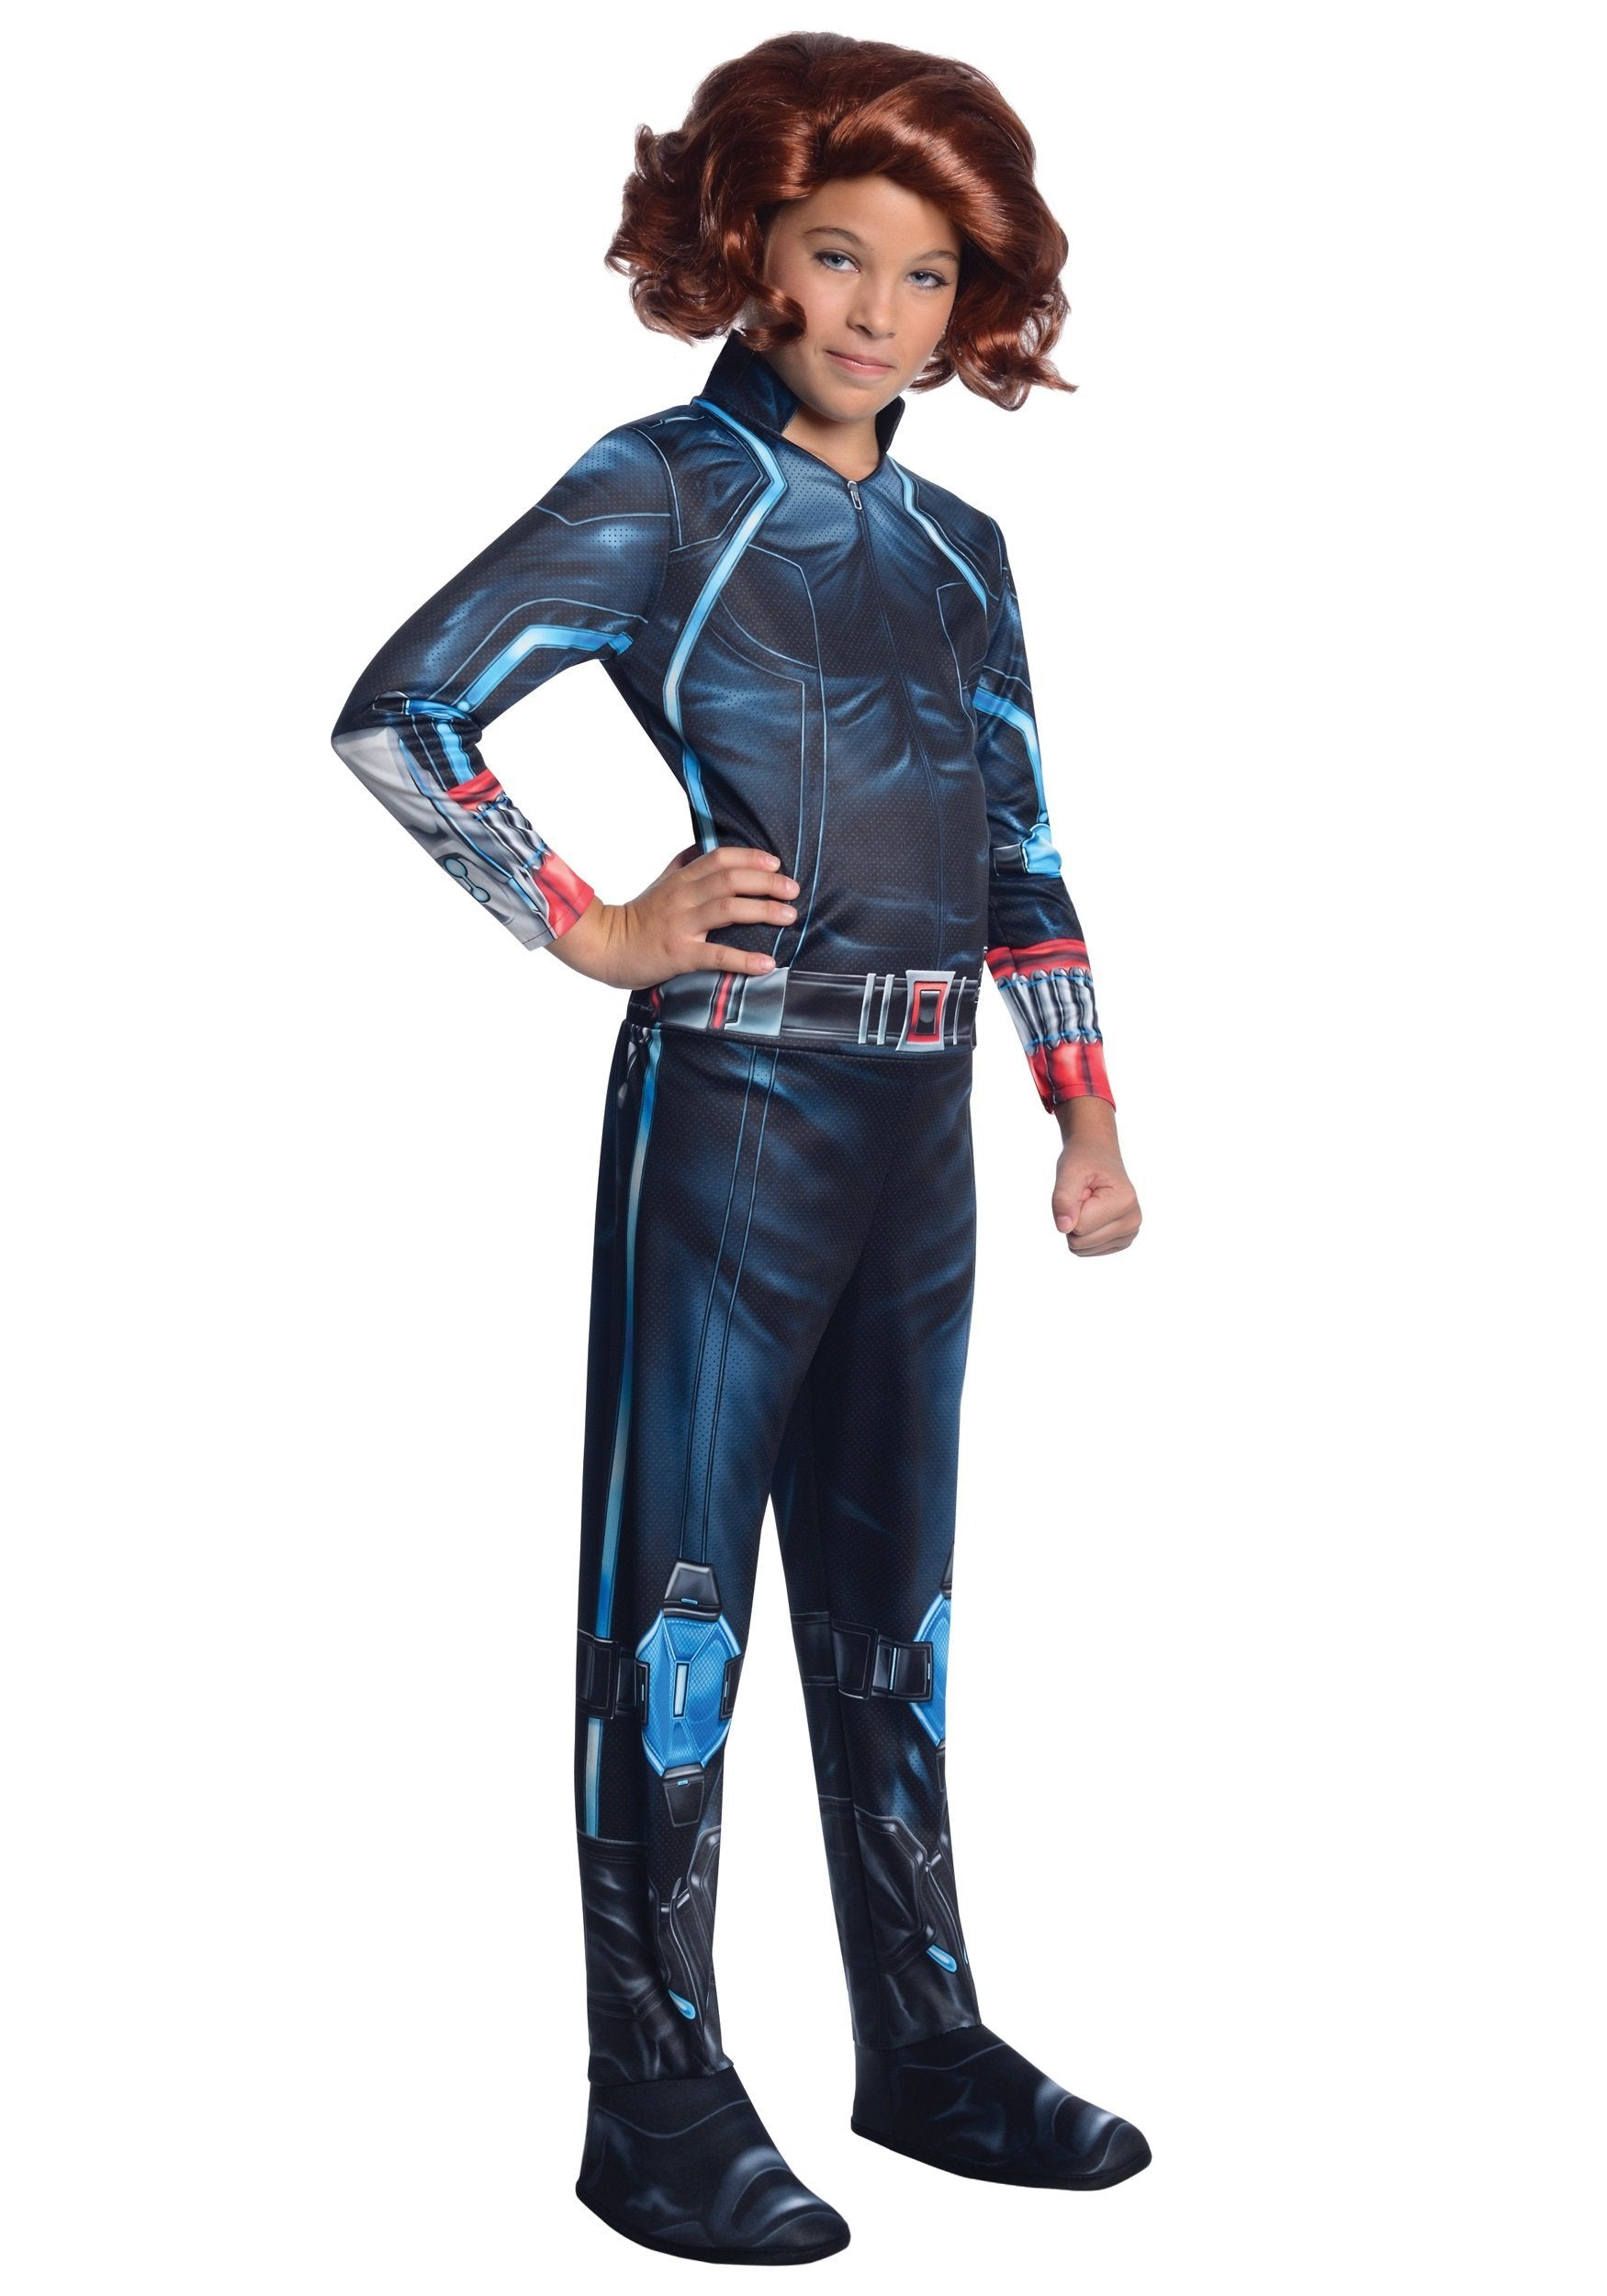 Black Widow Child - The Costume Company | Fancy Dress Costumes Hire and Purchase Brisbane and Australia